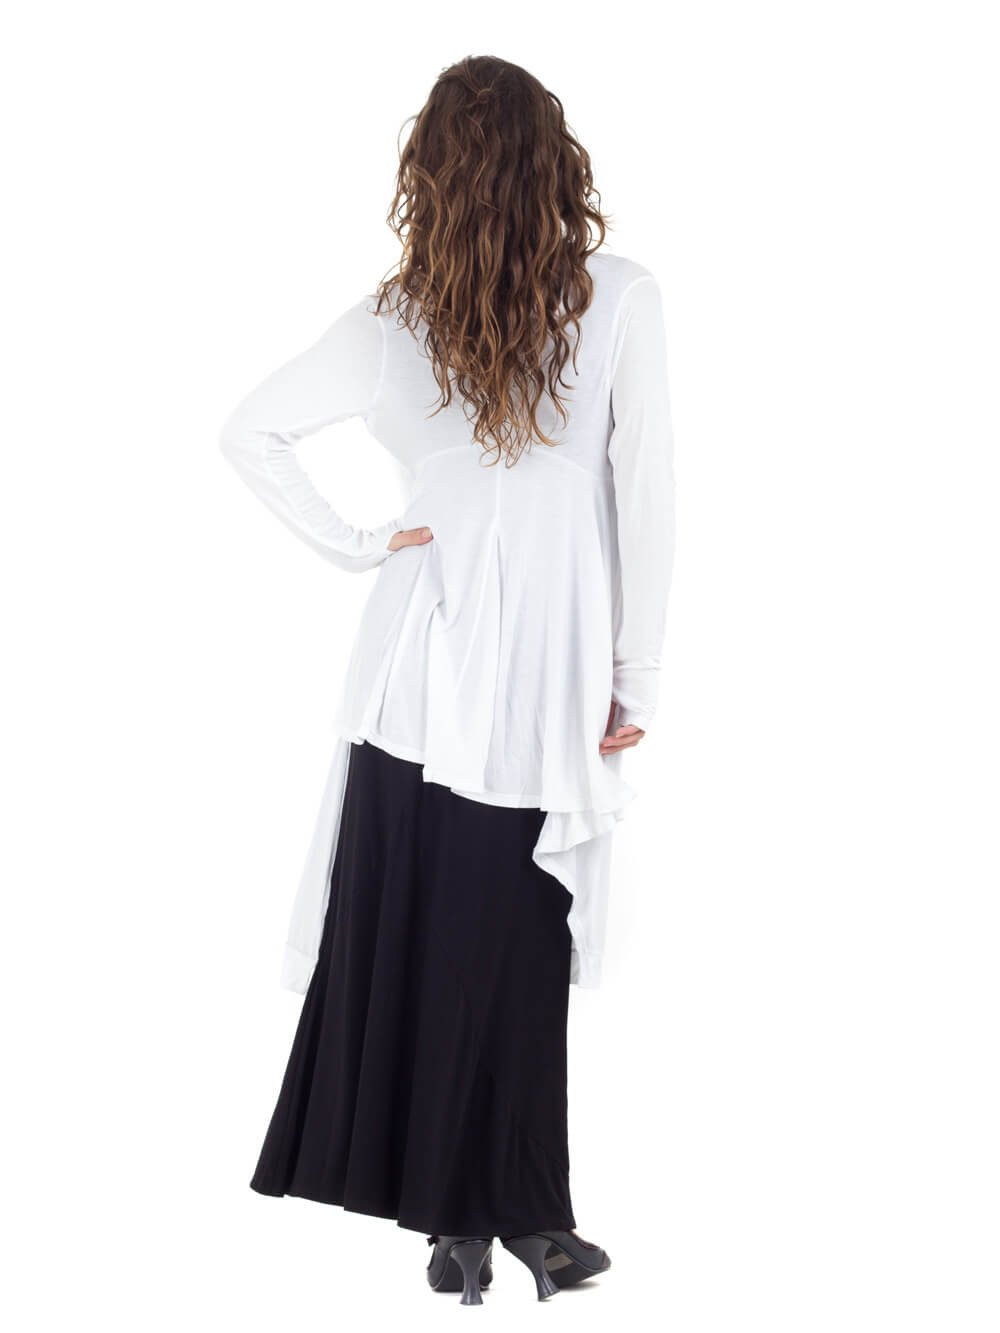 Womens Rayon Jersey Flow Jacket in White with a Rayon Jersey Maxi Dress in Black-back view